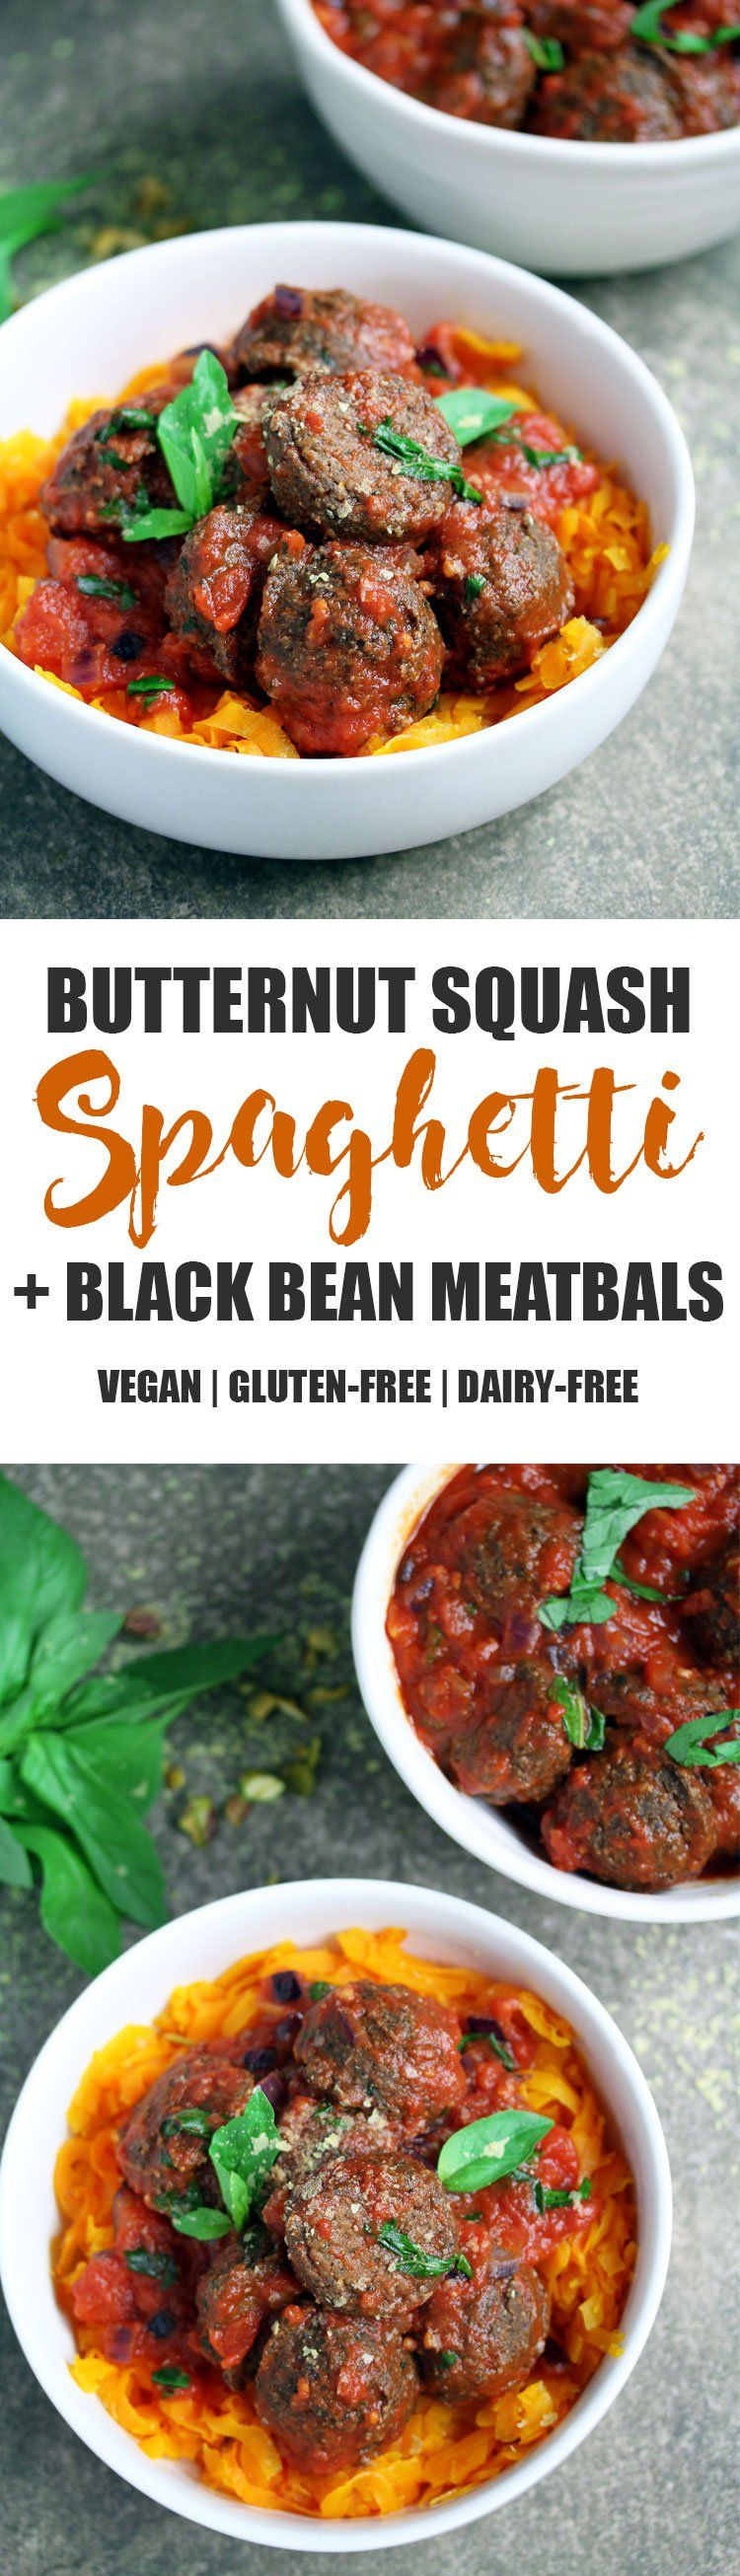 Butternut squash spaghetti with black bean meatballs uk health butternut squash spaghetti with black bean meatballs uk health blog nadias healthy forumfinder Image collections